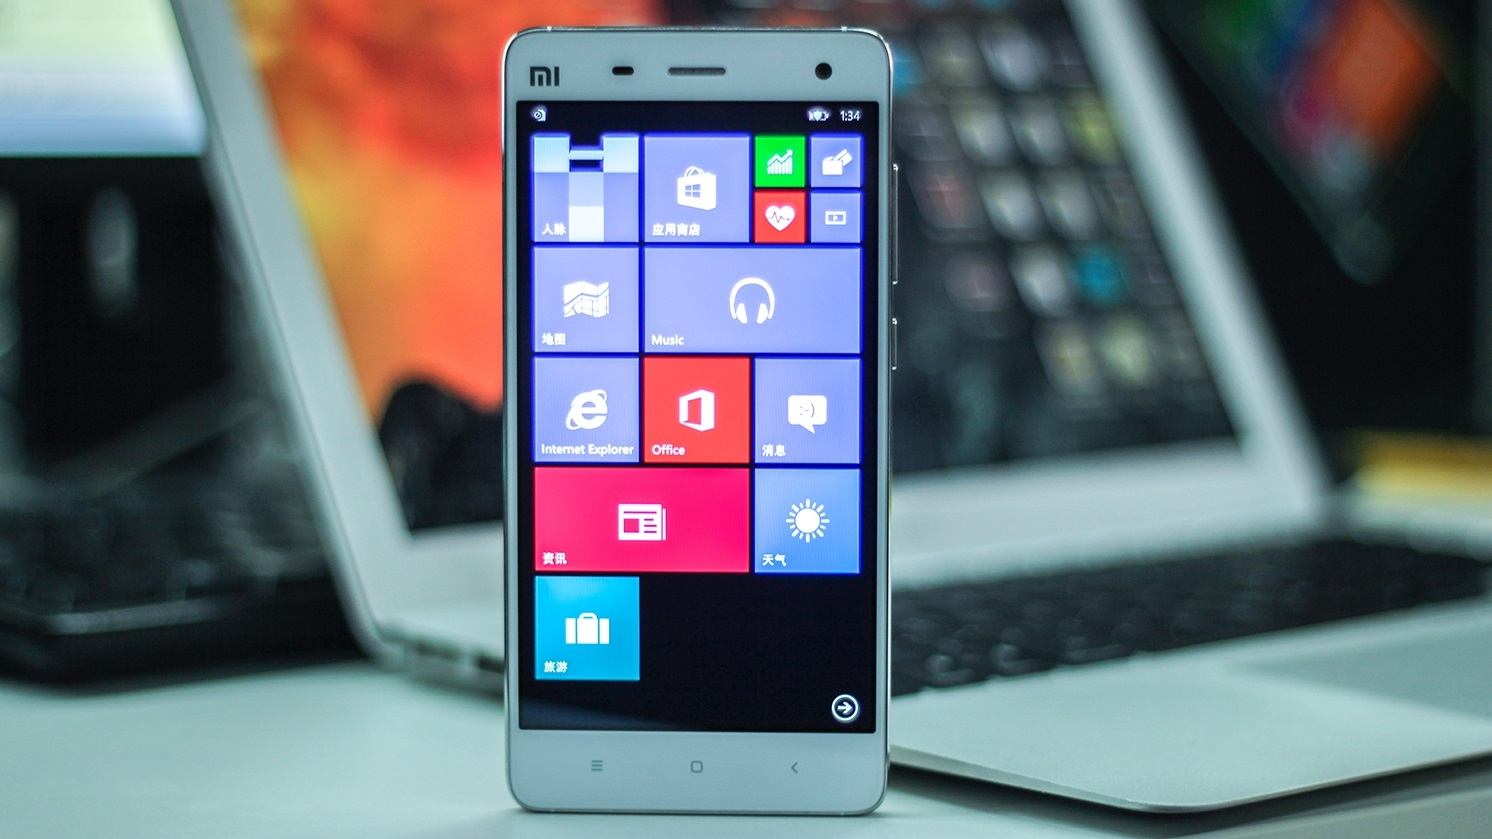 Xiaomi Mi 4 rodando Windows 10 (3)